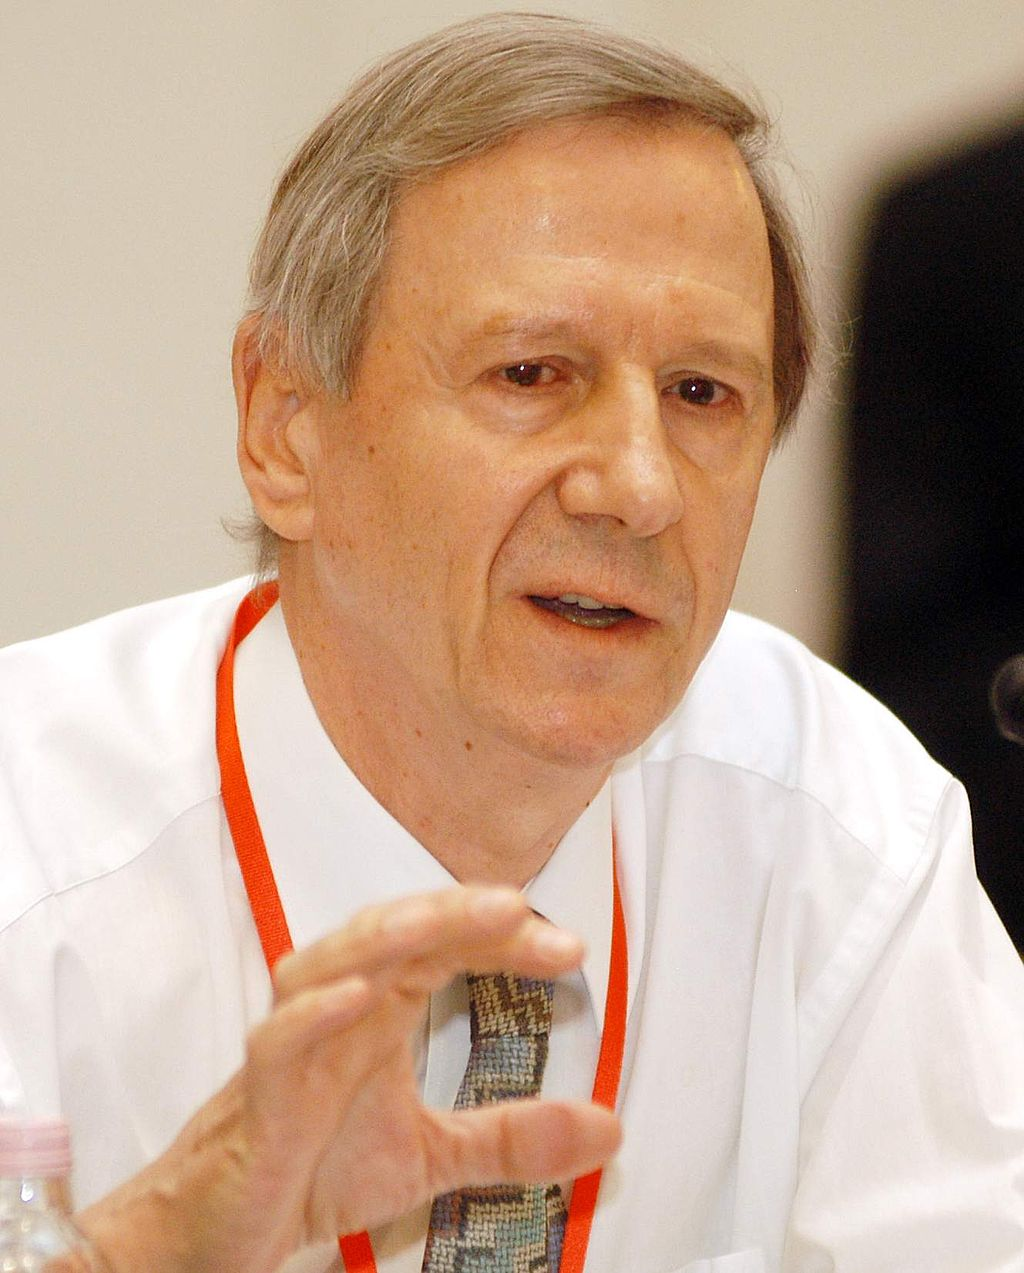 Anthony_Giddens_at_the_Progressive_Governance_Converence,_Budapest,_Hungary,_2004_October